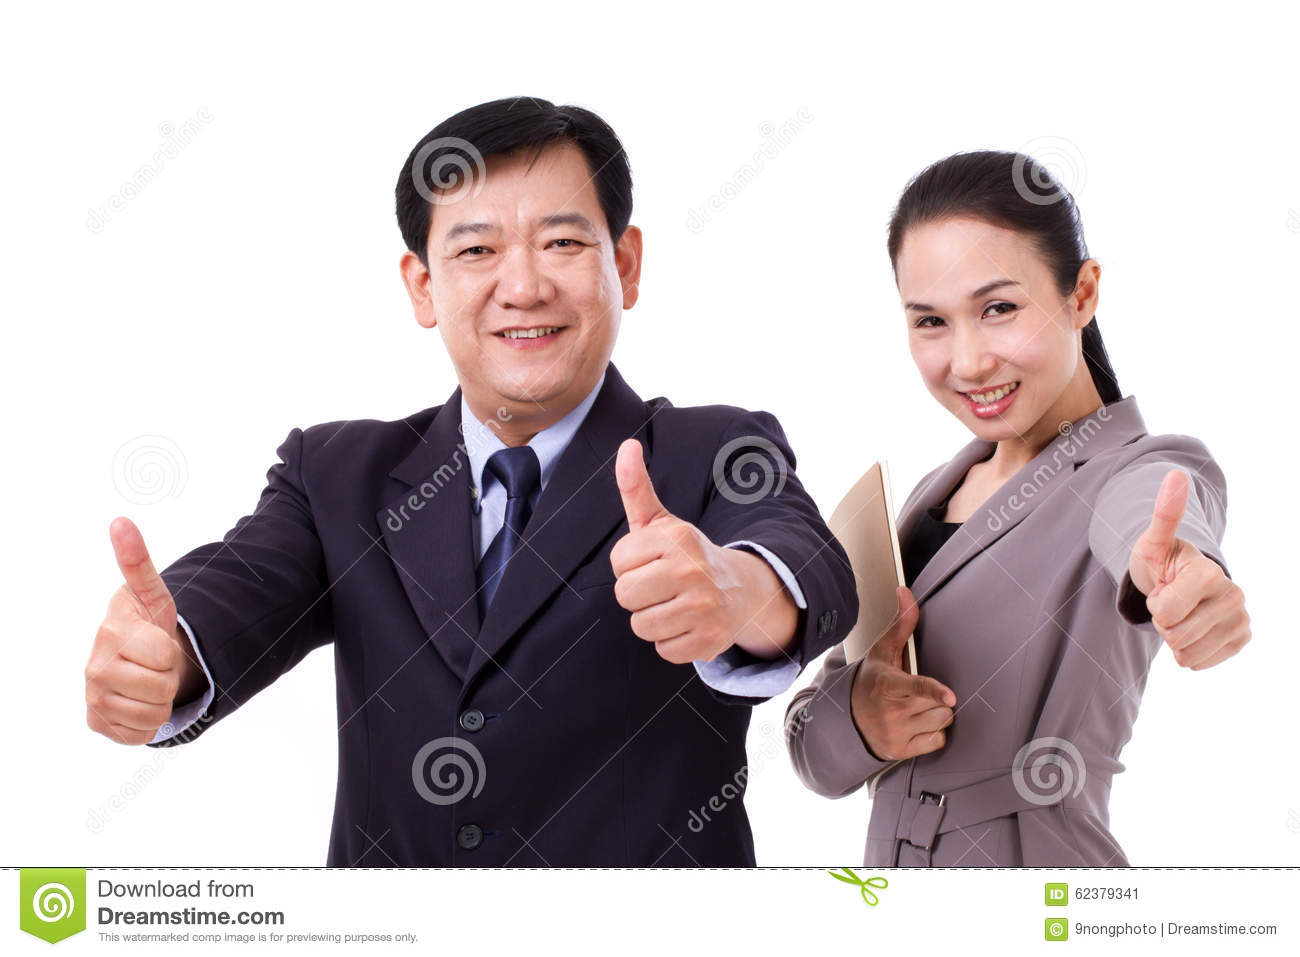 successful, happy, confident business people giving thumb up gesture to you